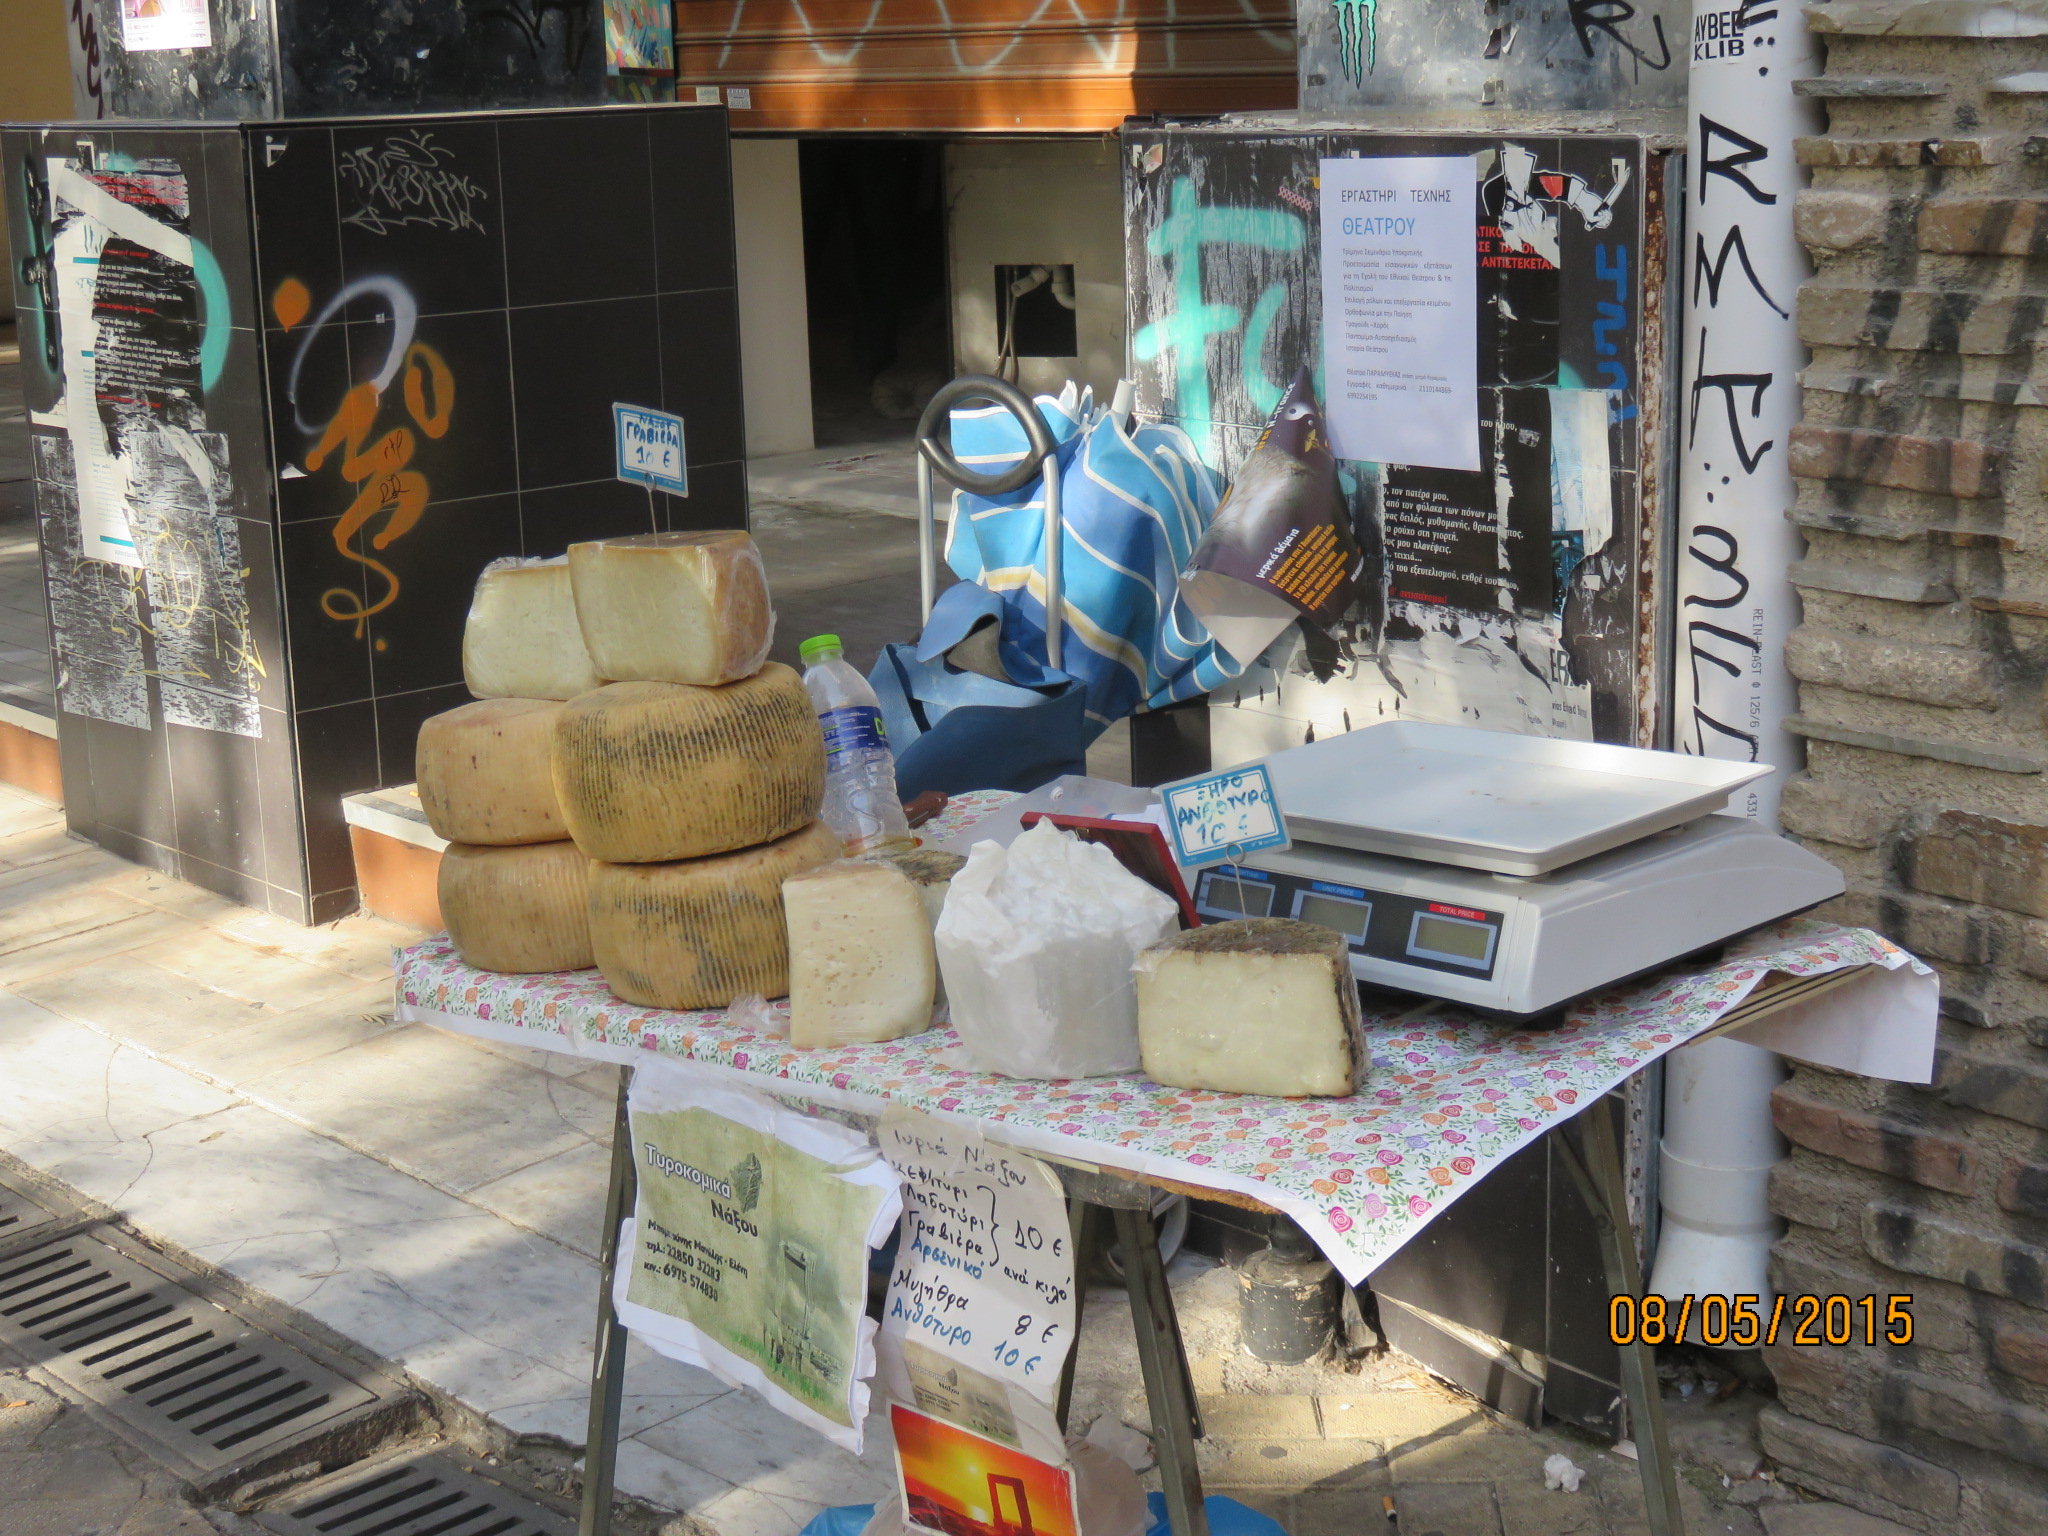 Cheese selling on the sidewalk